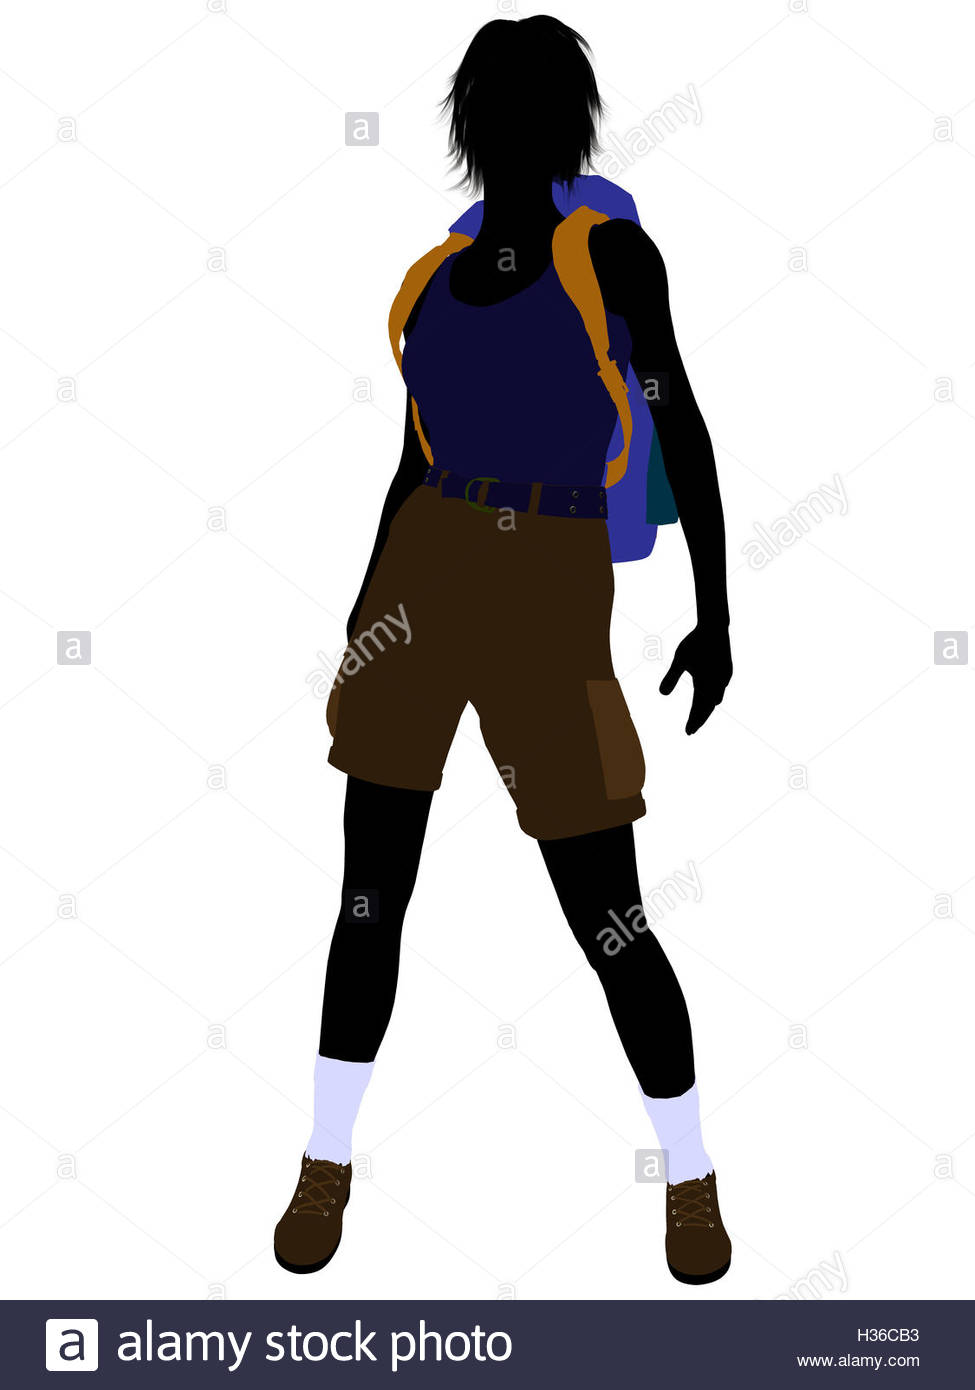 975x1390 Girl Hiker Silhouette Stock Photo, Royalty Free Image 122457975